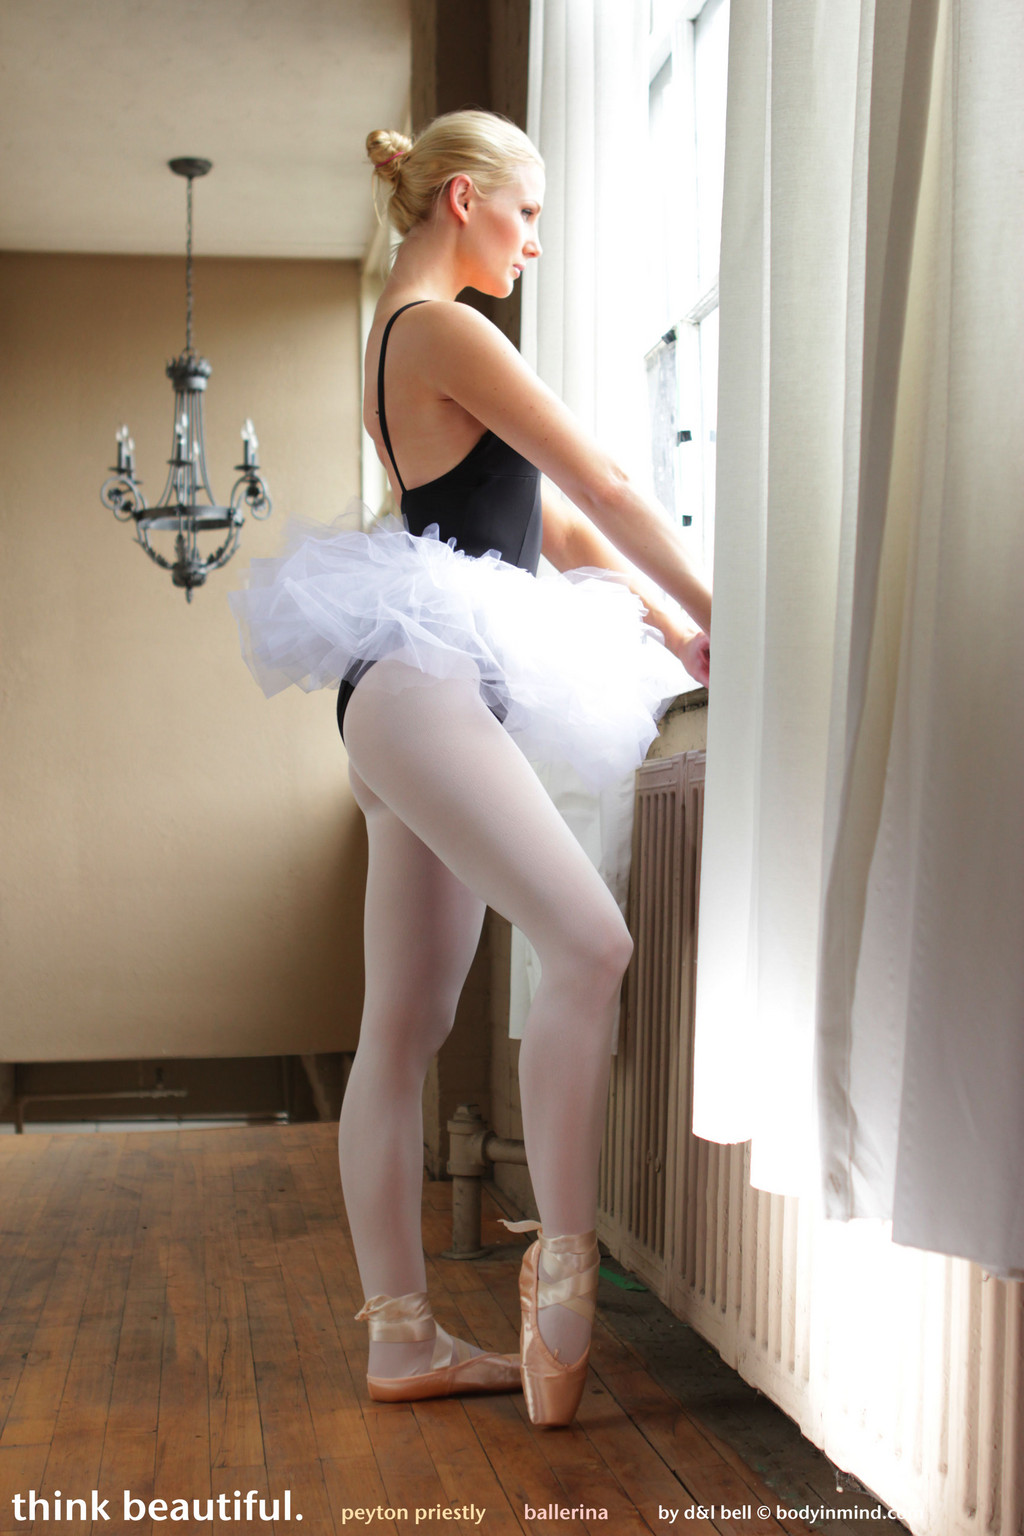 Fine Art Teens - Peyton Priestly Ballerina From Body in Mind